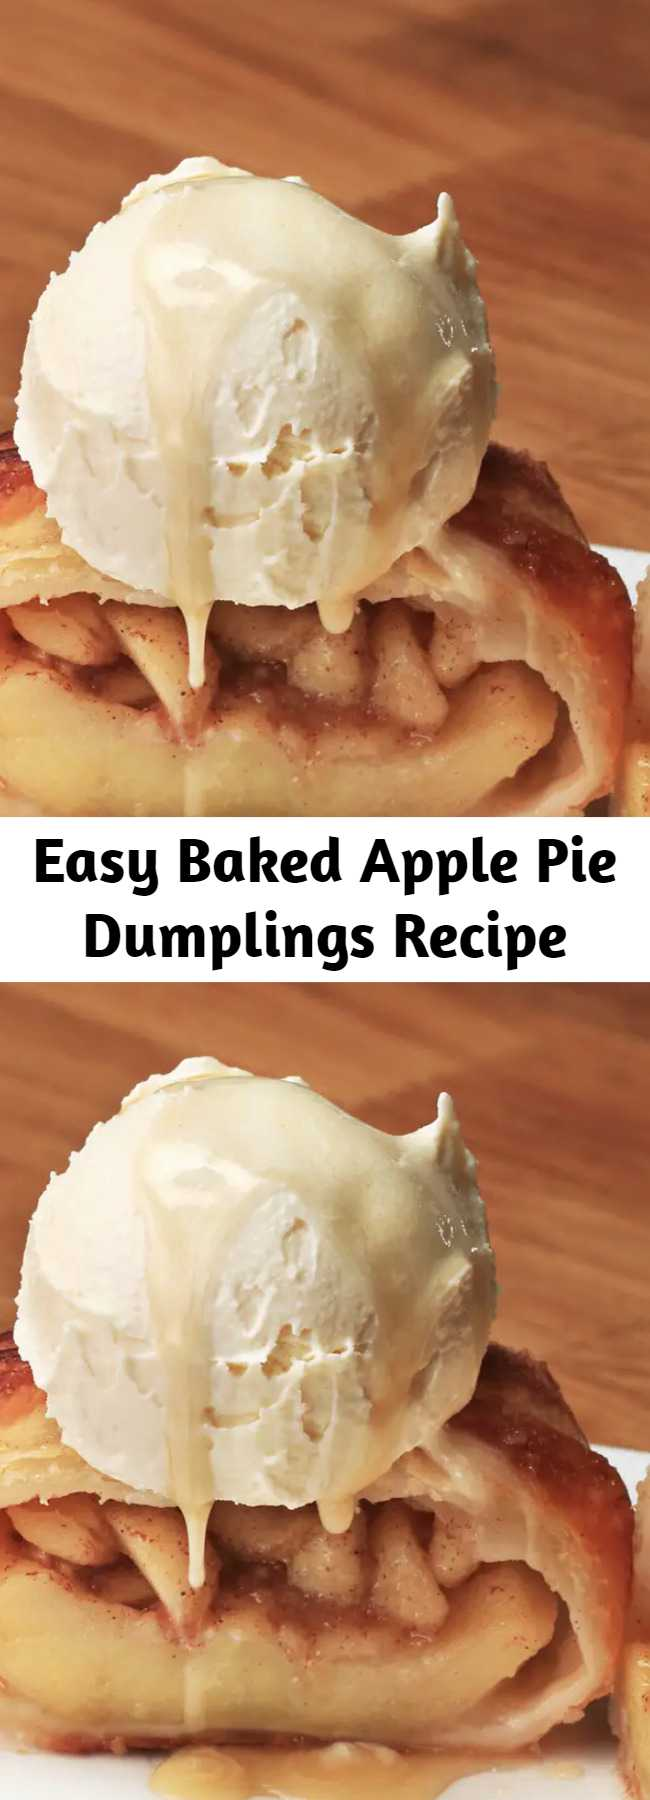 Easy Baked Apple Pie Dumplings Recipe - Snuggle up for Fall with these Apple Pie Dumplings!